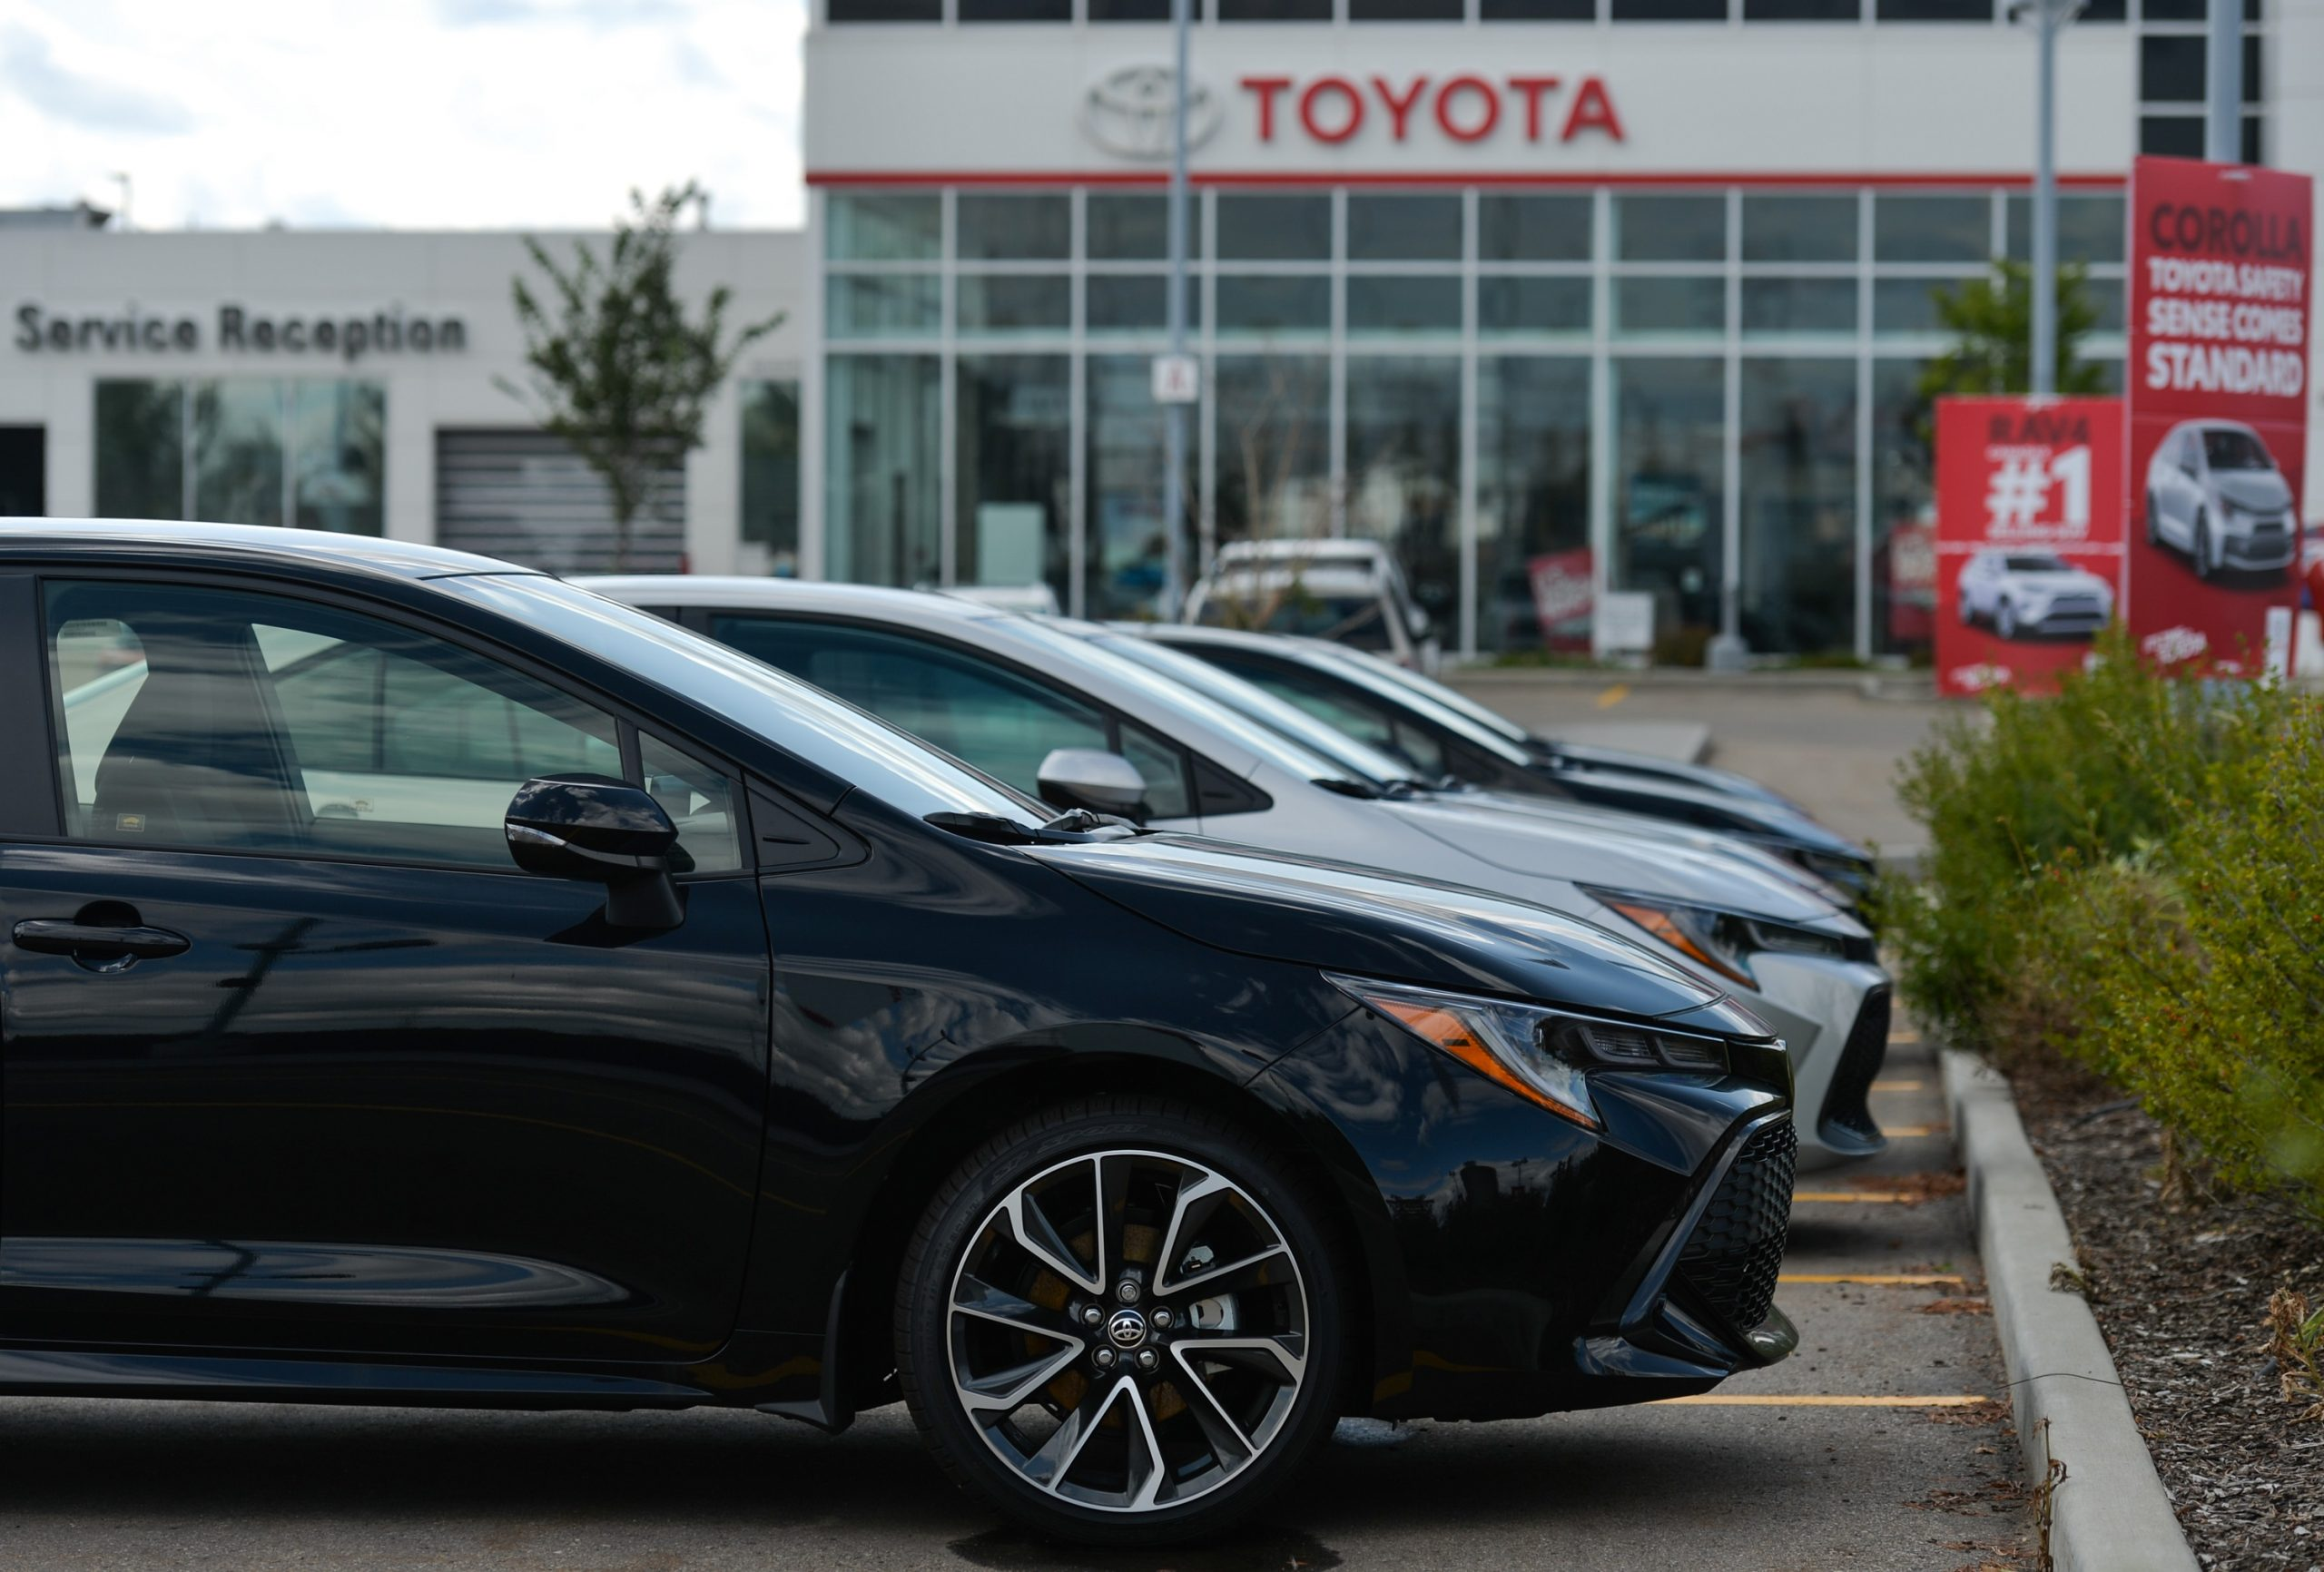 A line of 2022 Toyota Corolla models, shot in profile on a Toyota dealership lot